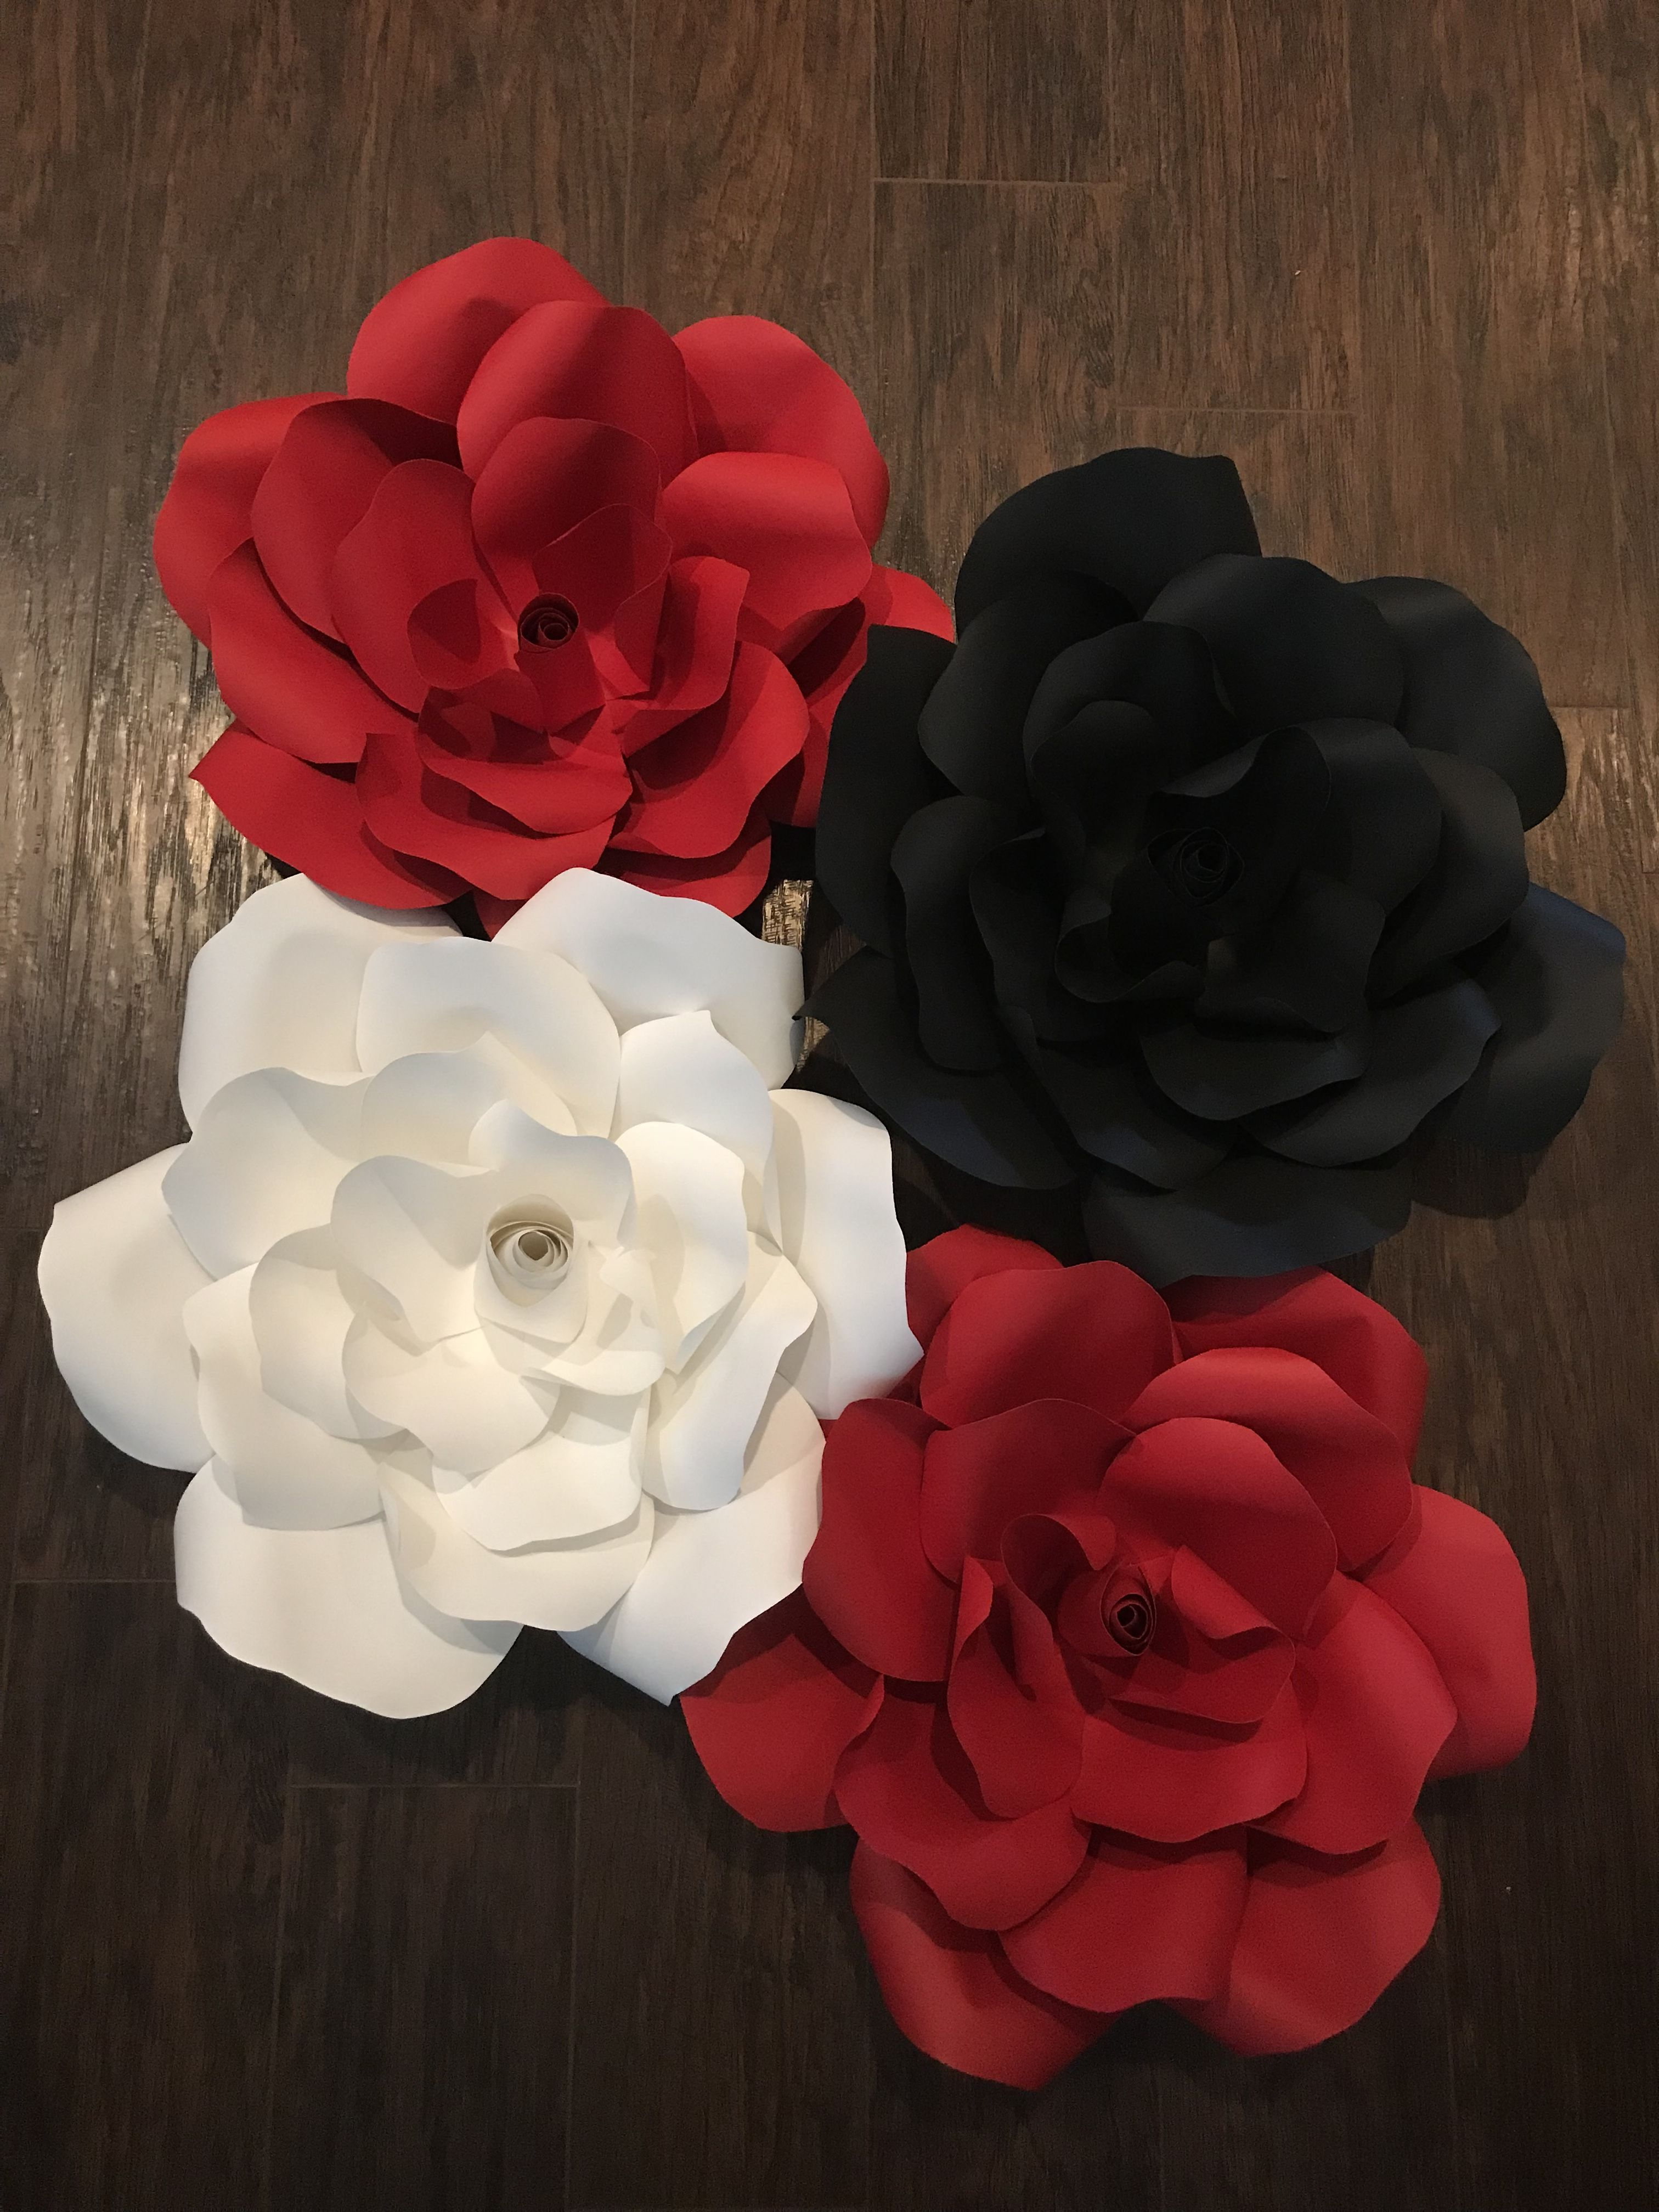 Red White And Black Paper Roses Crafts Pinterest Paper Roses